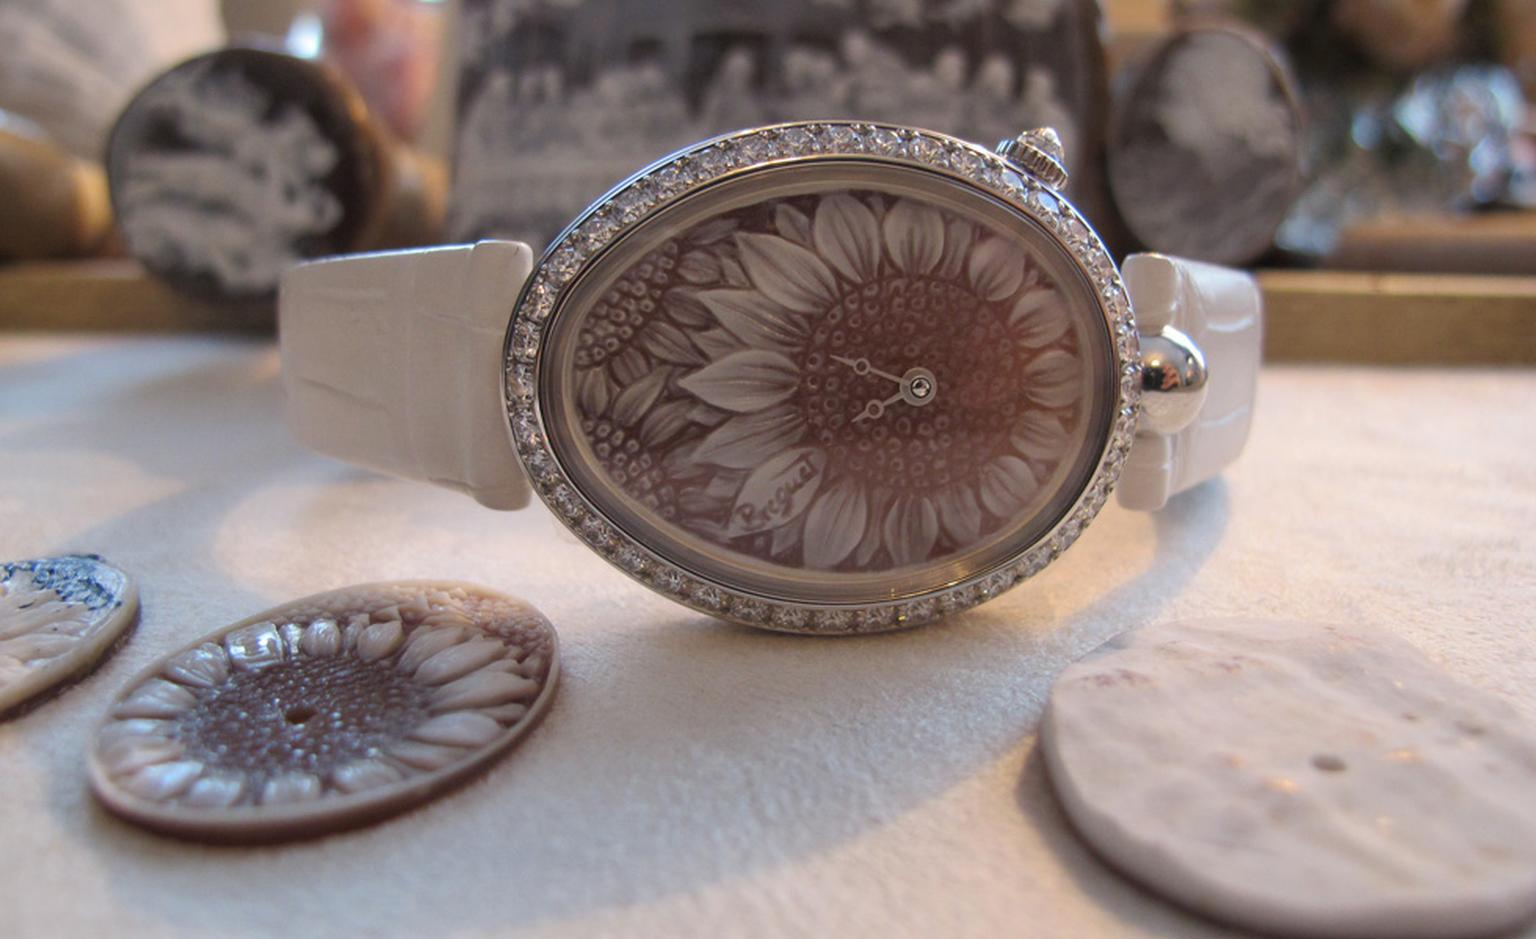 Breguet and the art of cameo carving